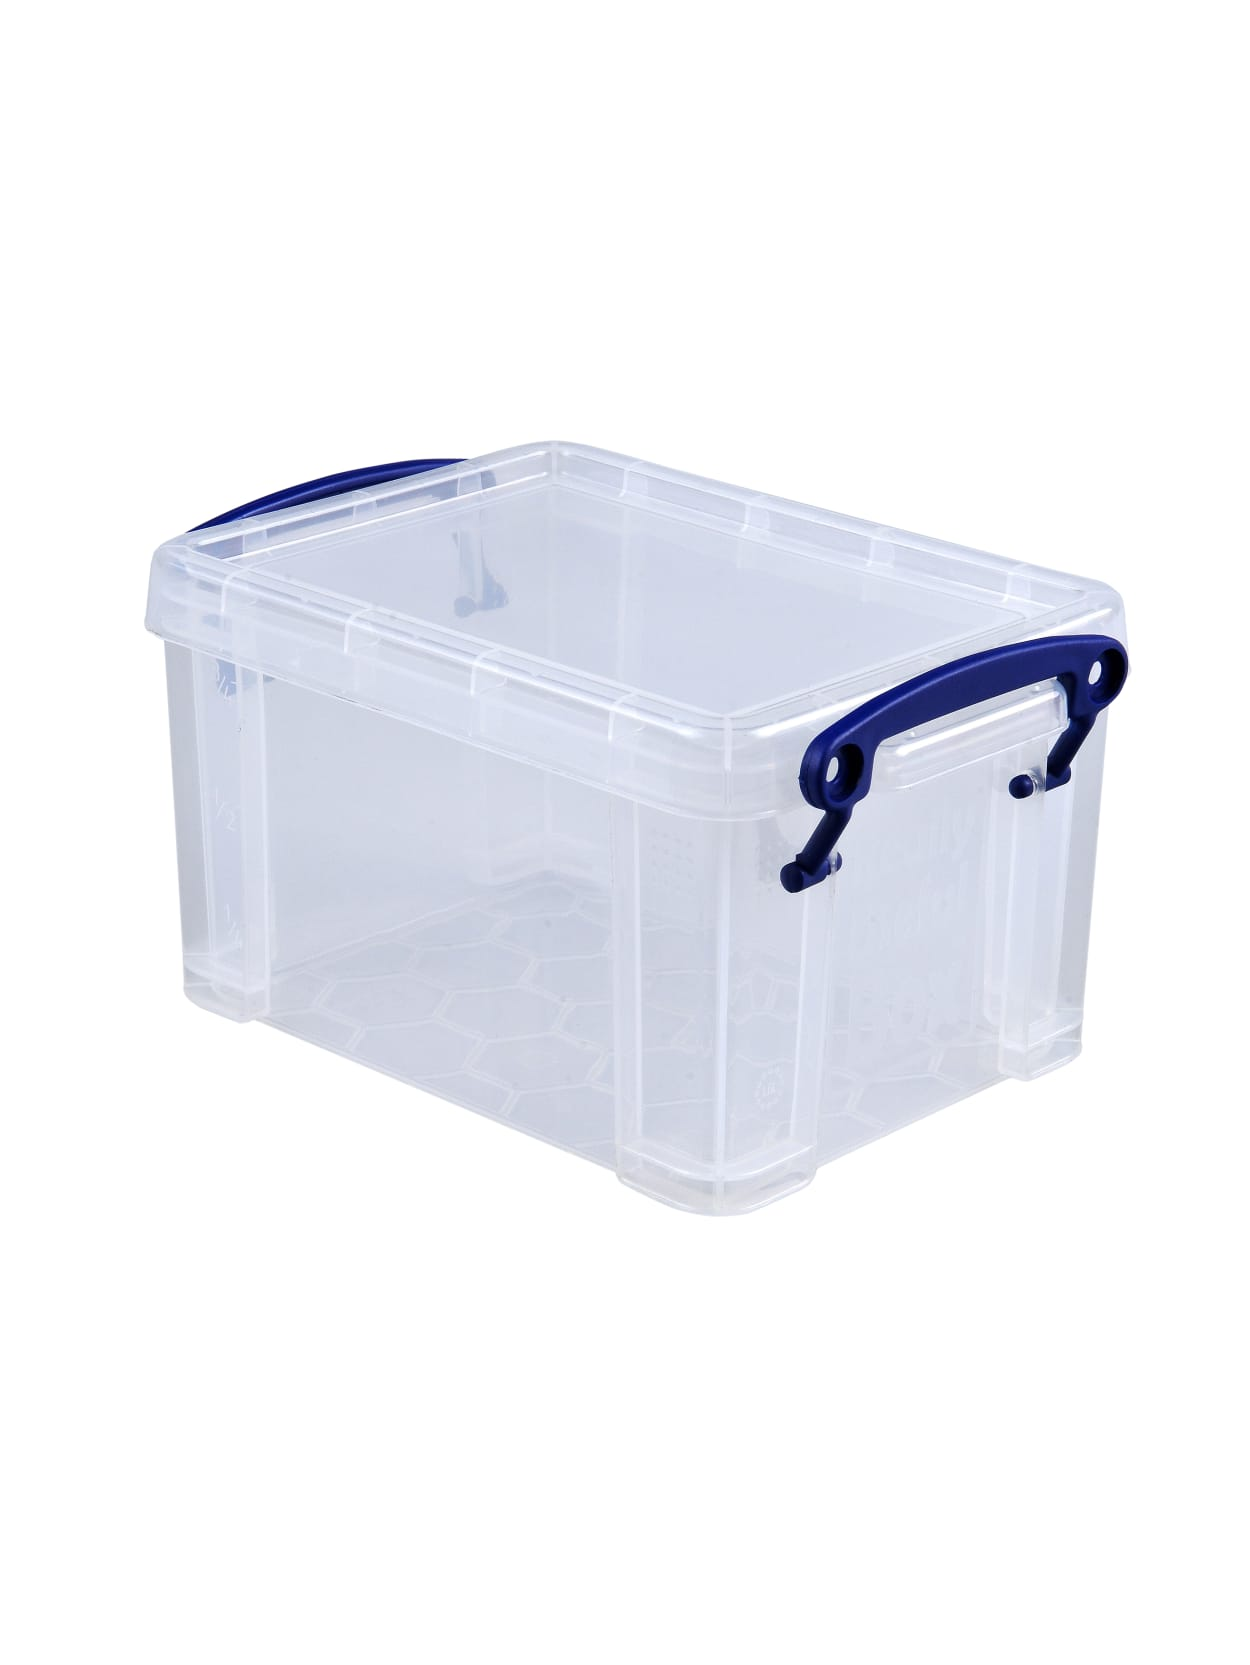 Really Useful Box Plastic Storage Container With Built In Handles And Snap Lid 1 6 Liters 7 12 X 5 14 X 4 14 Clear Office Depot